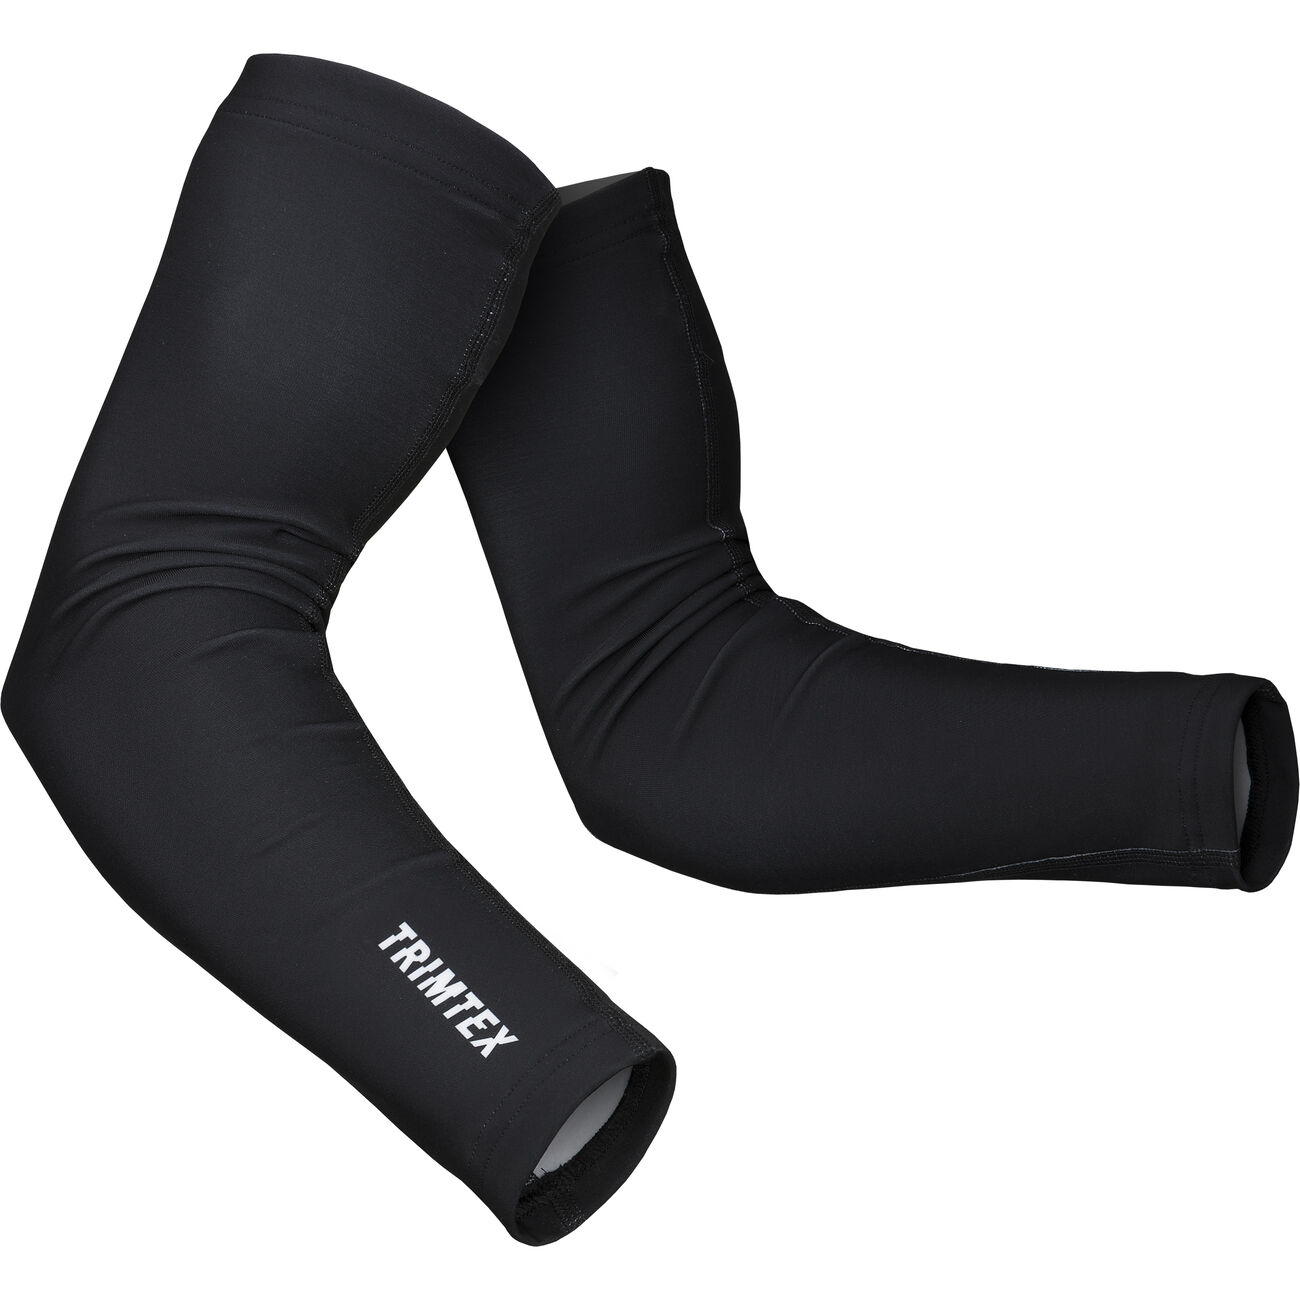 Elite arm warmers